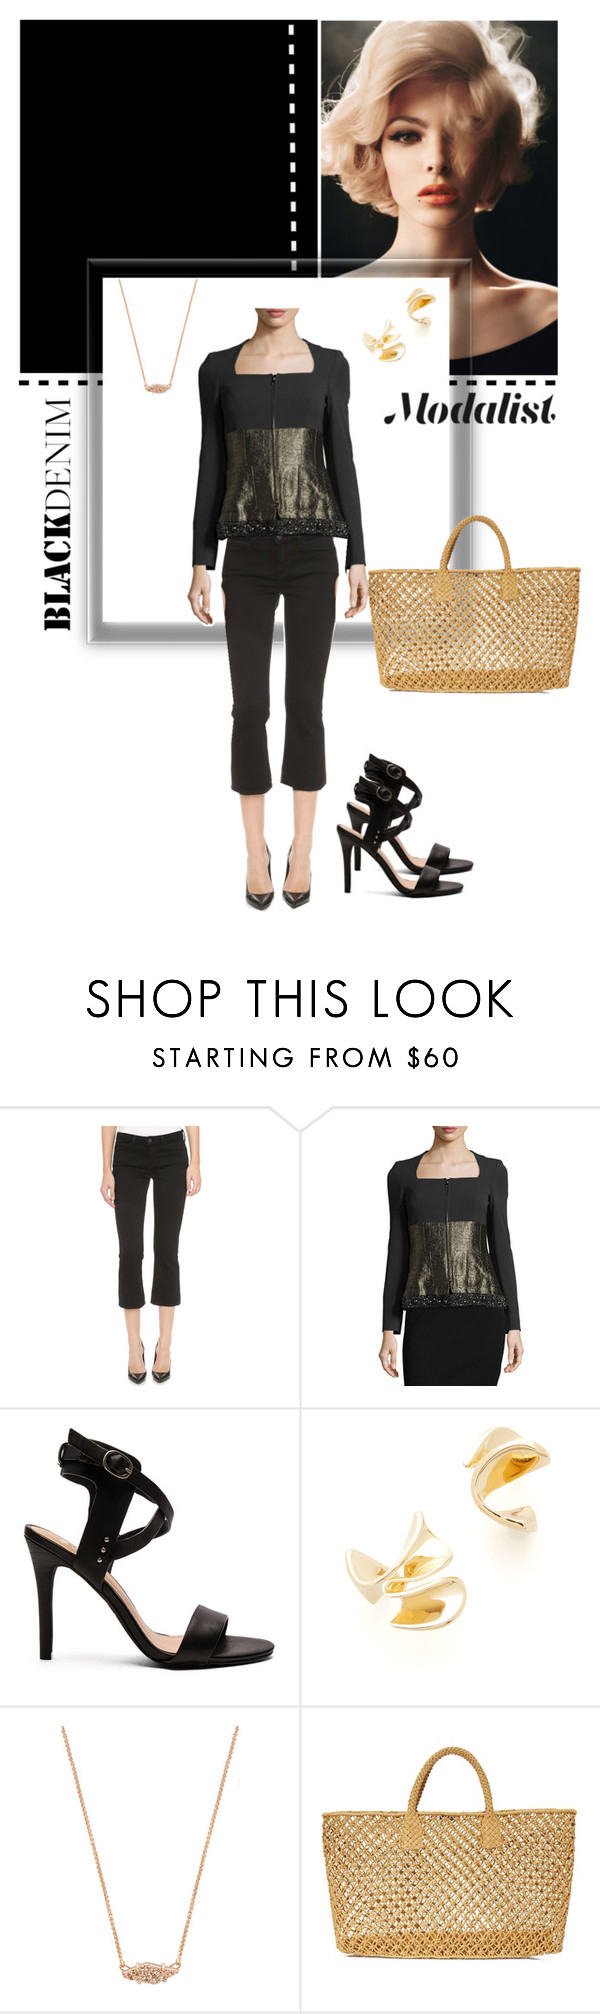 """Winters in Black"" by modalist on Polyvore featuring L'Agence, ESCADA, Joe's Jeans, Elizabeth and James, Kendra Scott and Hat Attack"